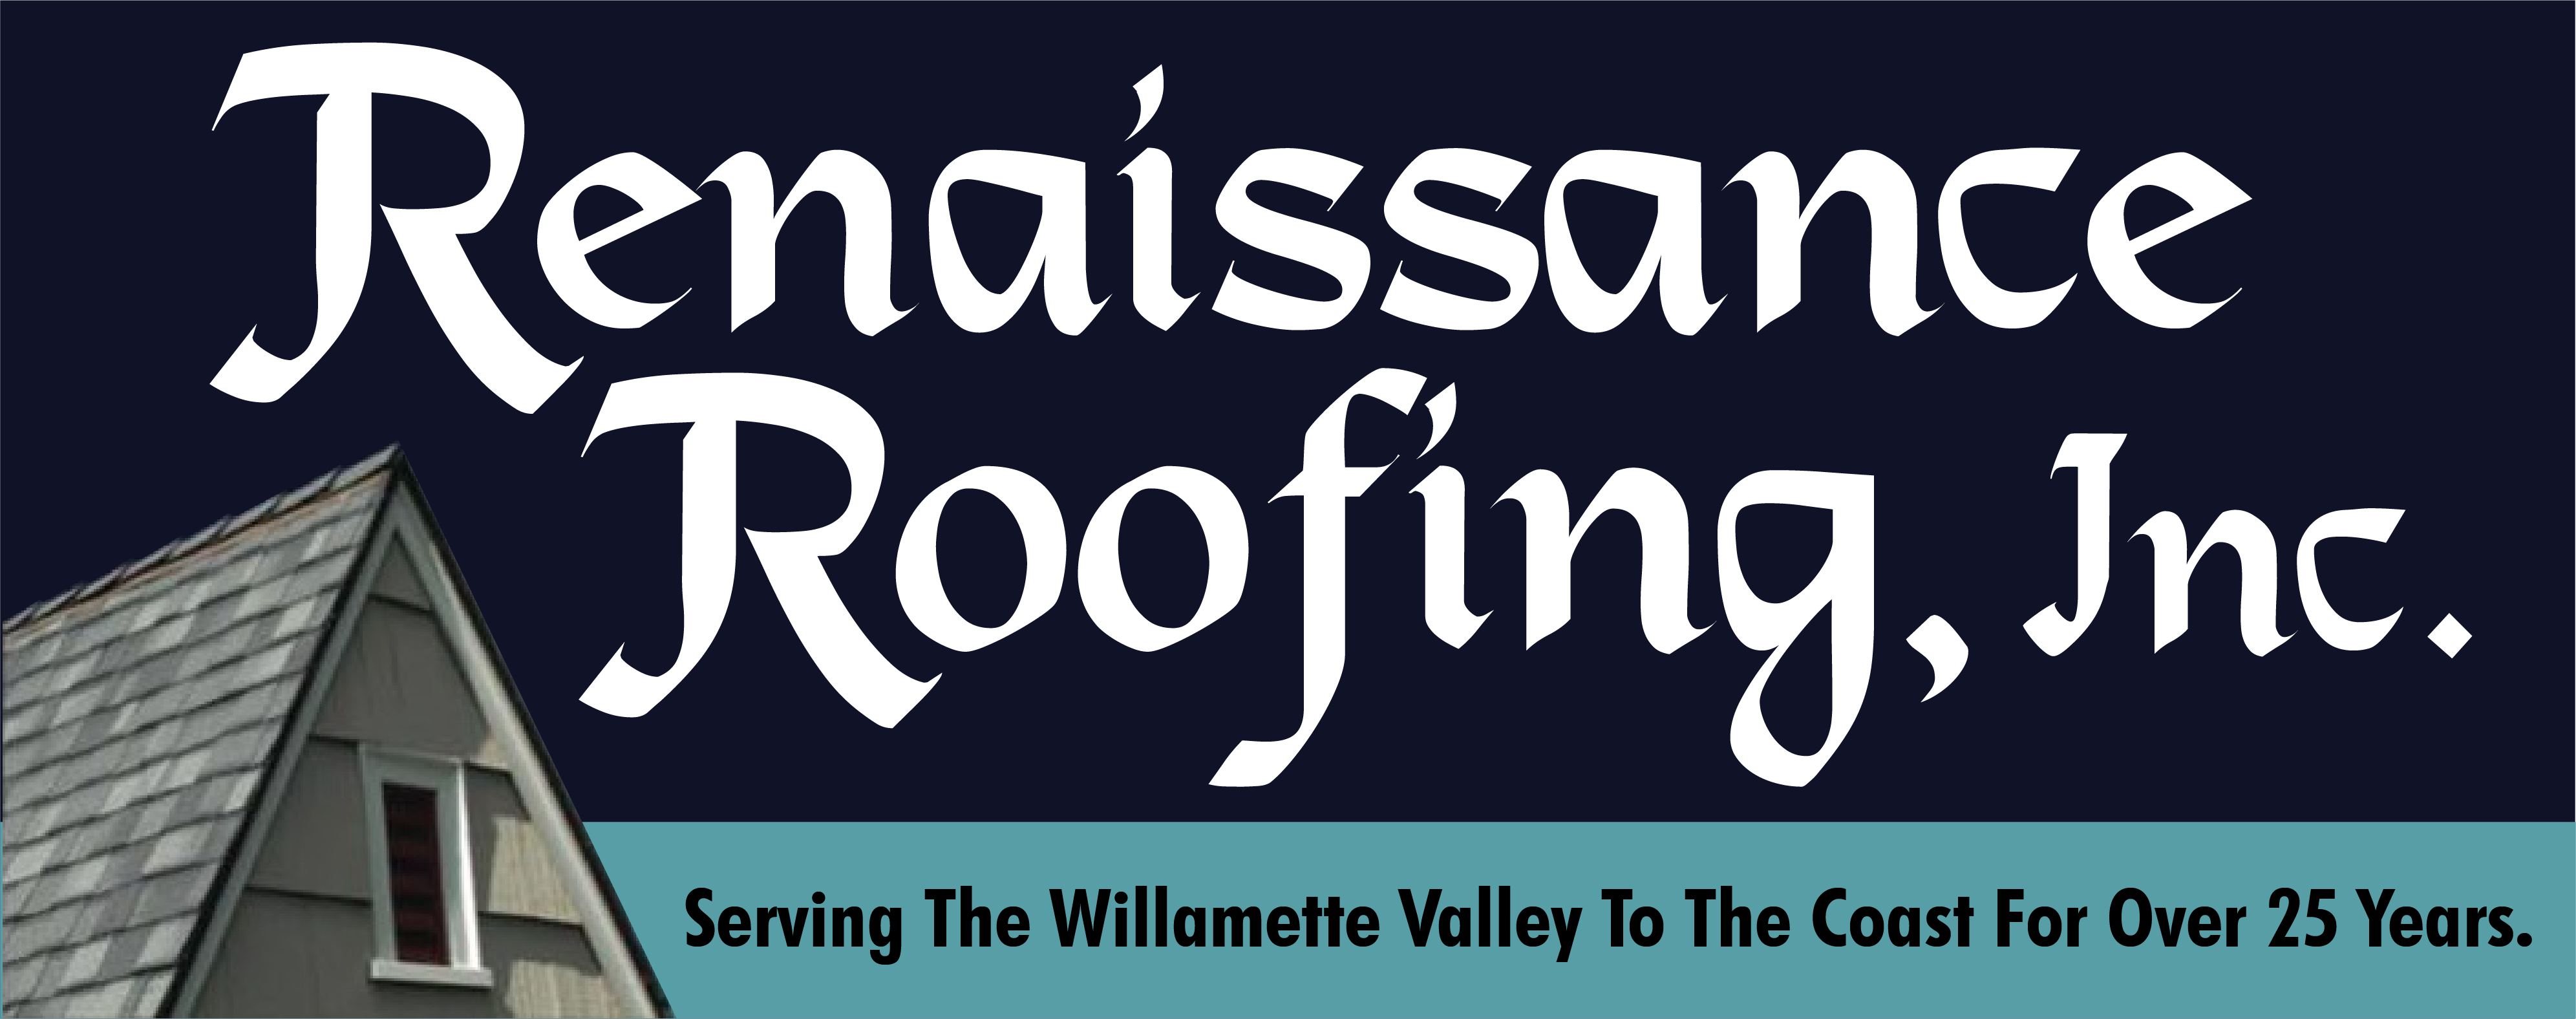 Renaissance Roofing, Inc, OR